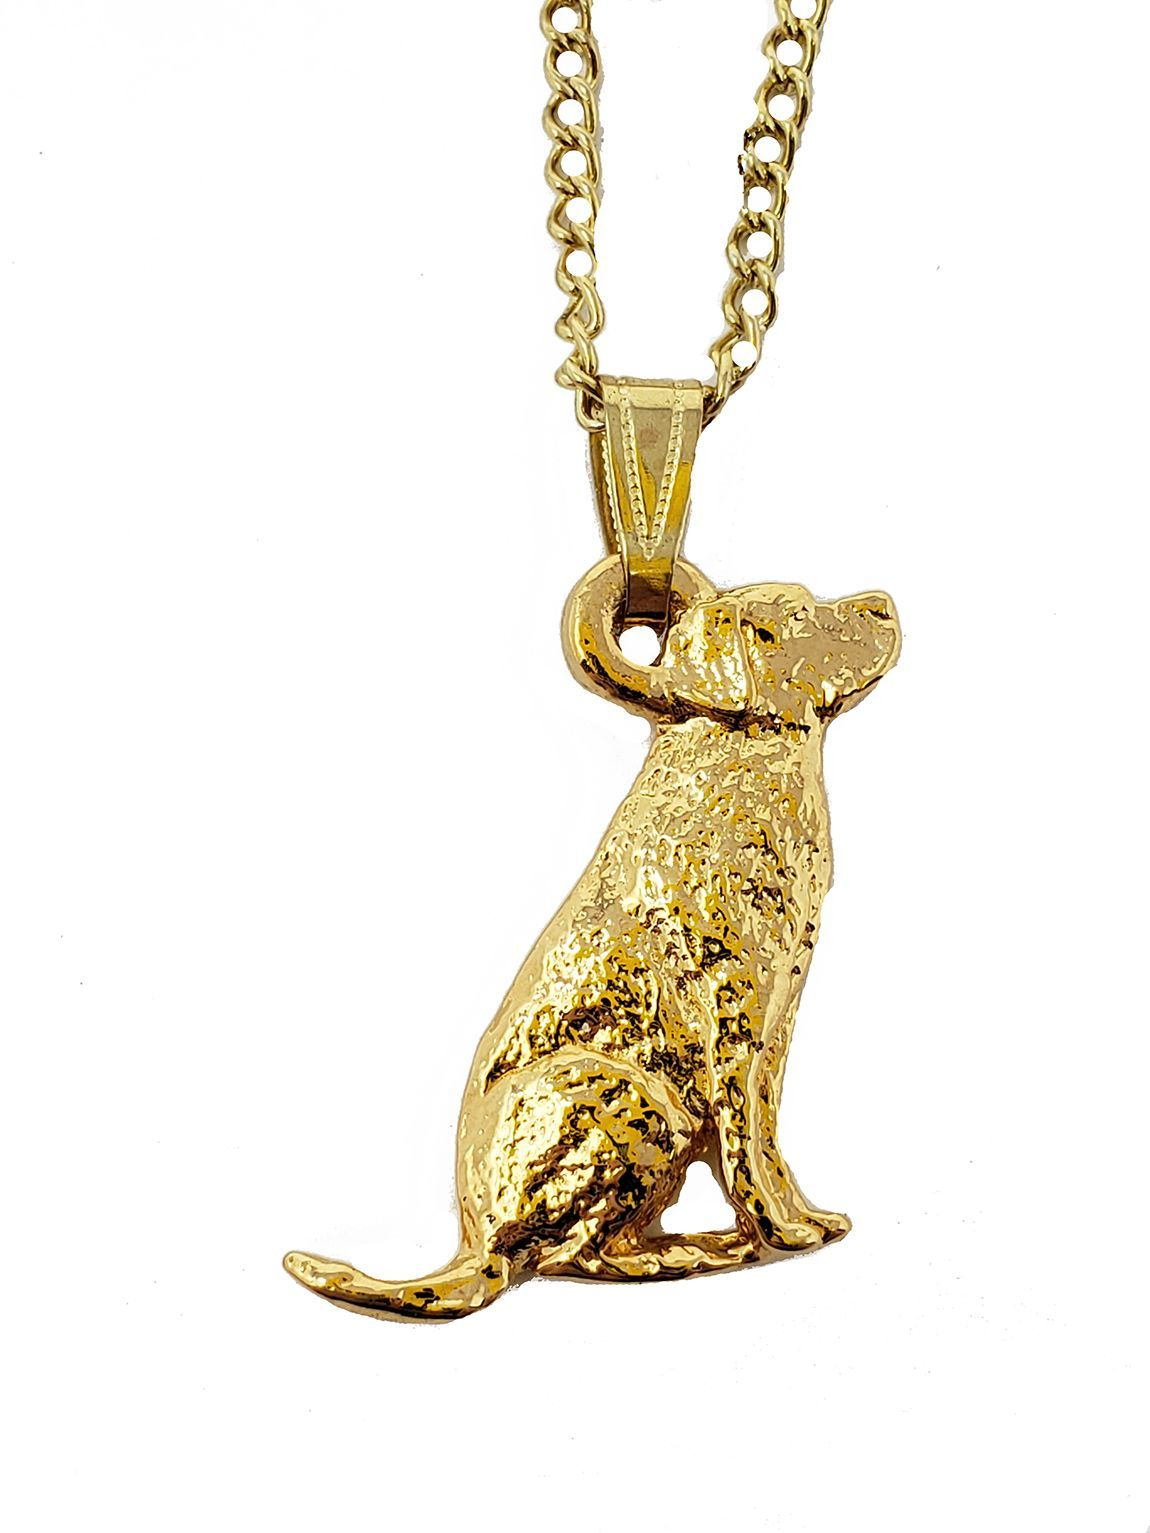 Labrador Retriever 24K Gold Plated Pendant with Necklace Sitting